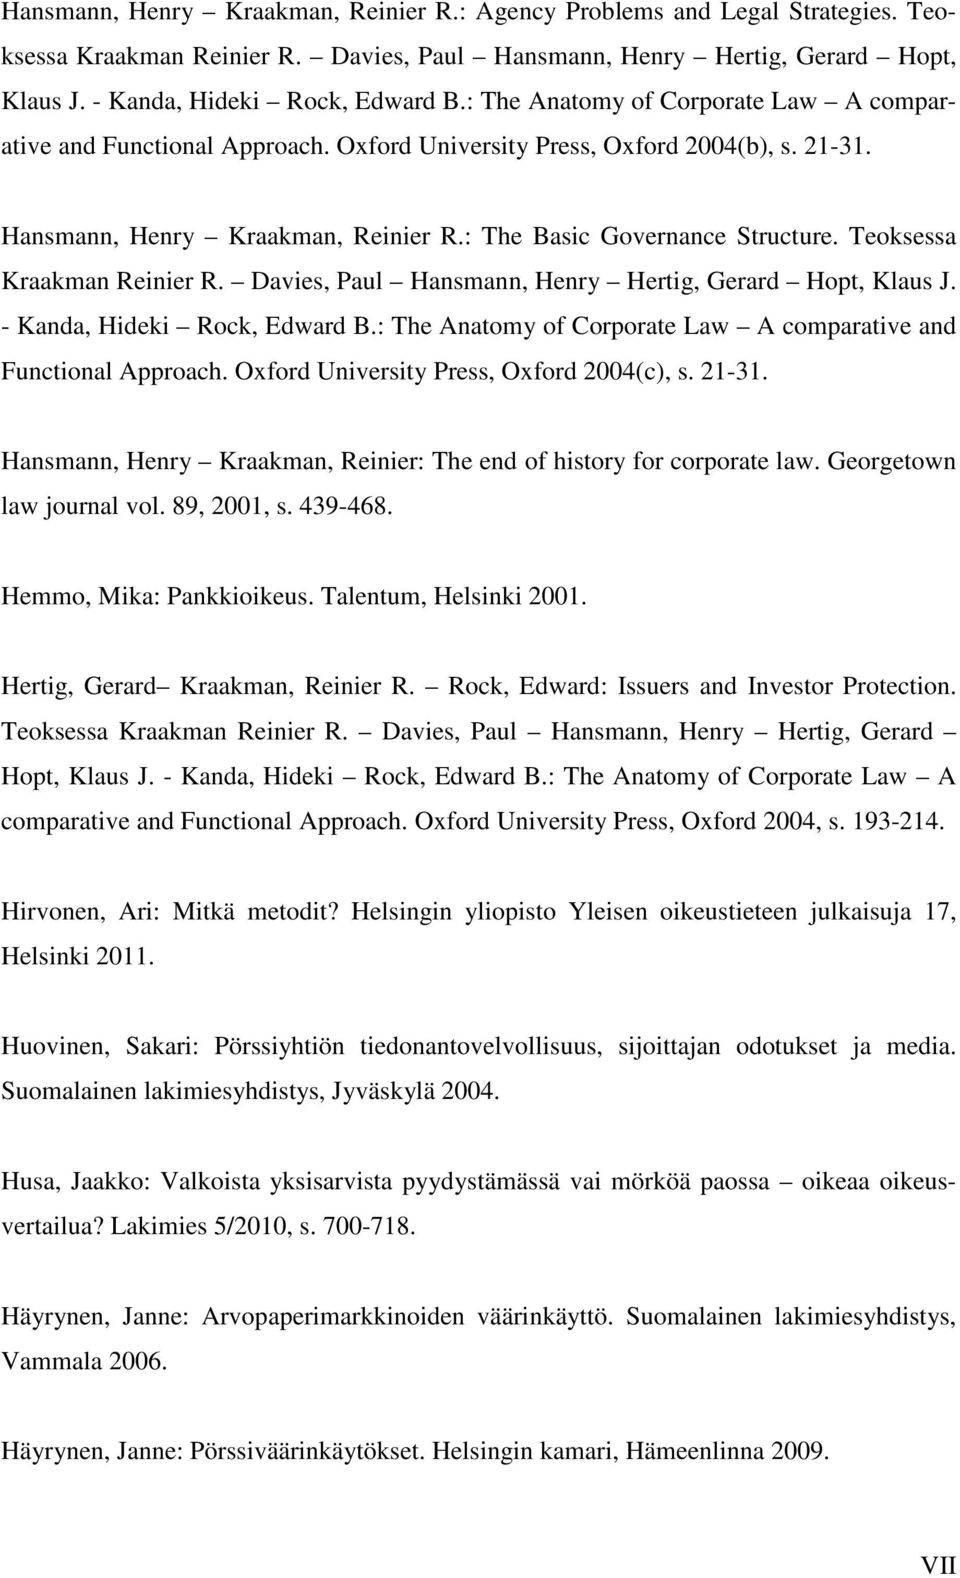 Teoksessa Kraakman Reinier R. Davies, Paul Hansmann, Henry Hertig, Gerard Hopt, Klaus J. - Kanda, Hideki Rock, Edward B.: The Anatomy of Corporate Law A comparative and Functional Approach.